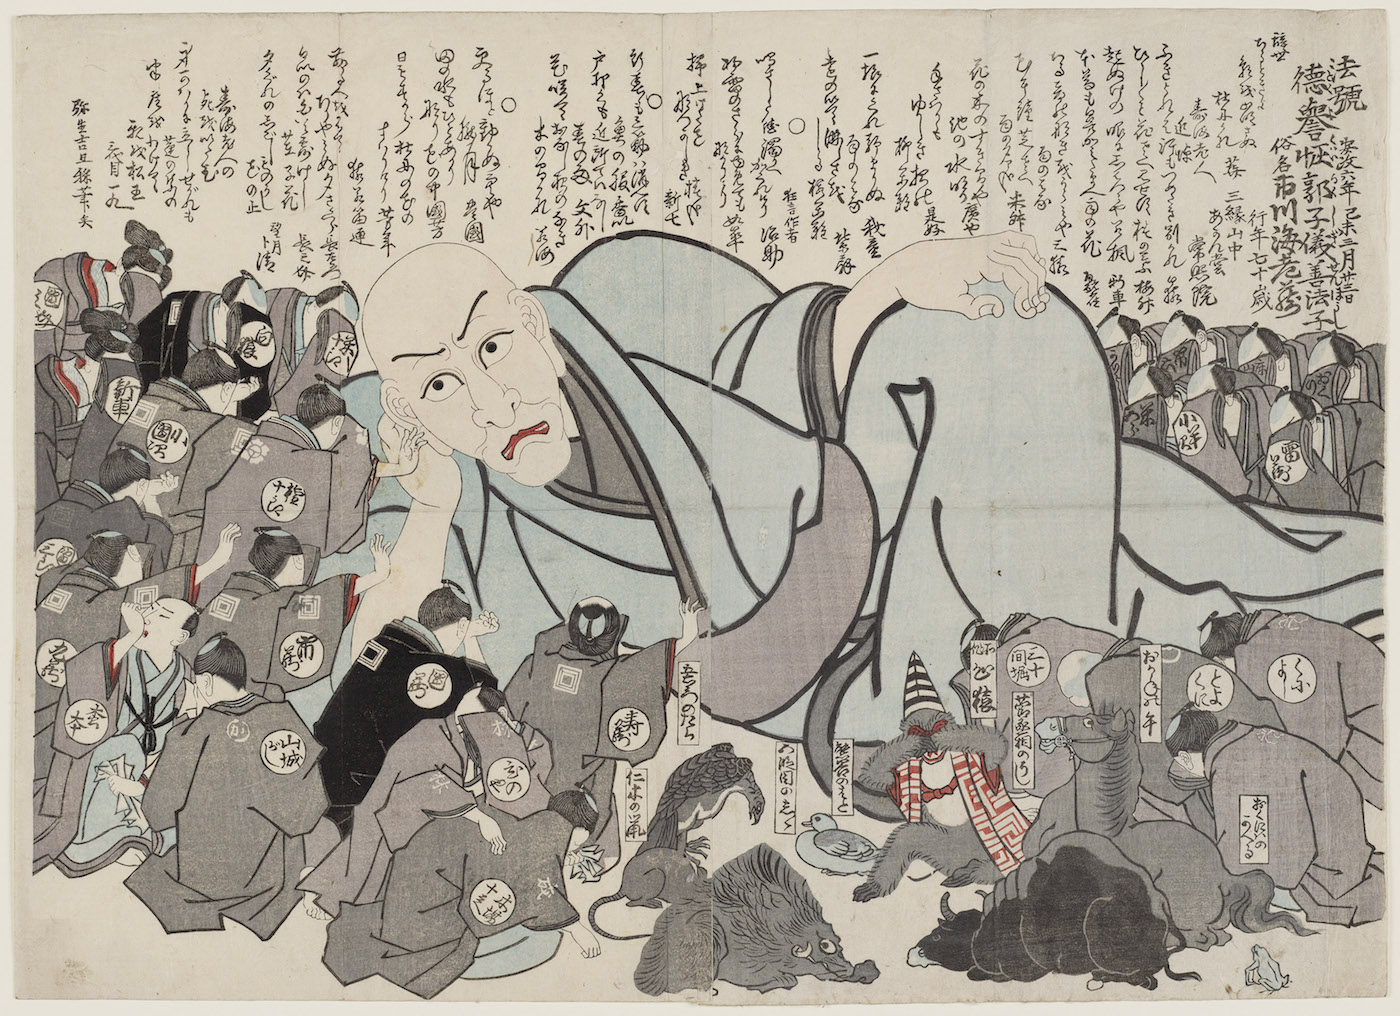 Memorial Portrait of Actor Ichikawa Ebizô V; Parody of The Death of the Historical Buddha (Nehan) Artist Unknown, Japanese 1859 (Ansei 6), 3rd month Woodblock print (nishiki-e); ink and color on paper * William Sturgis Bigelow Collection * Photograph © Museum of Fine Arts, Boston